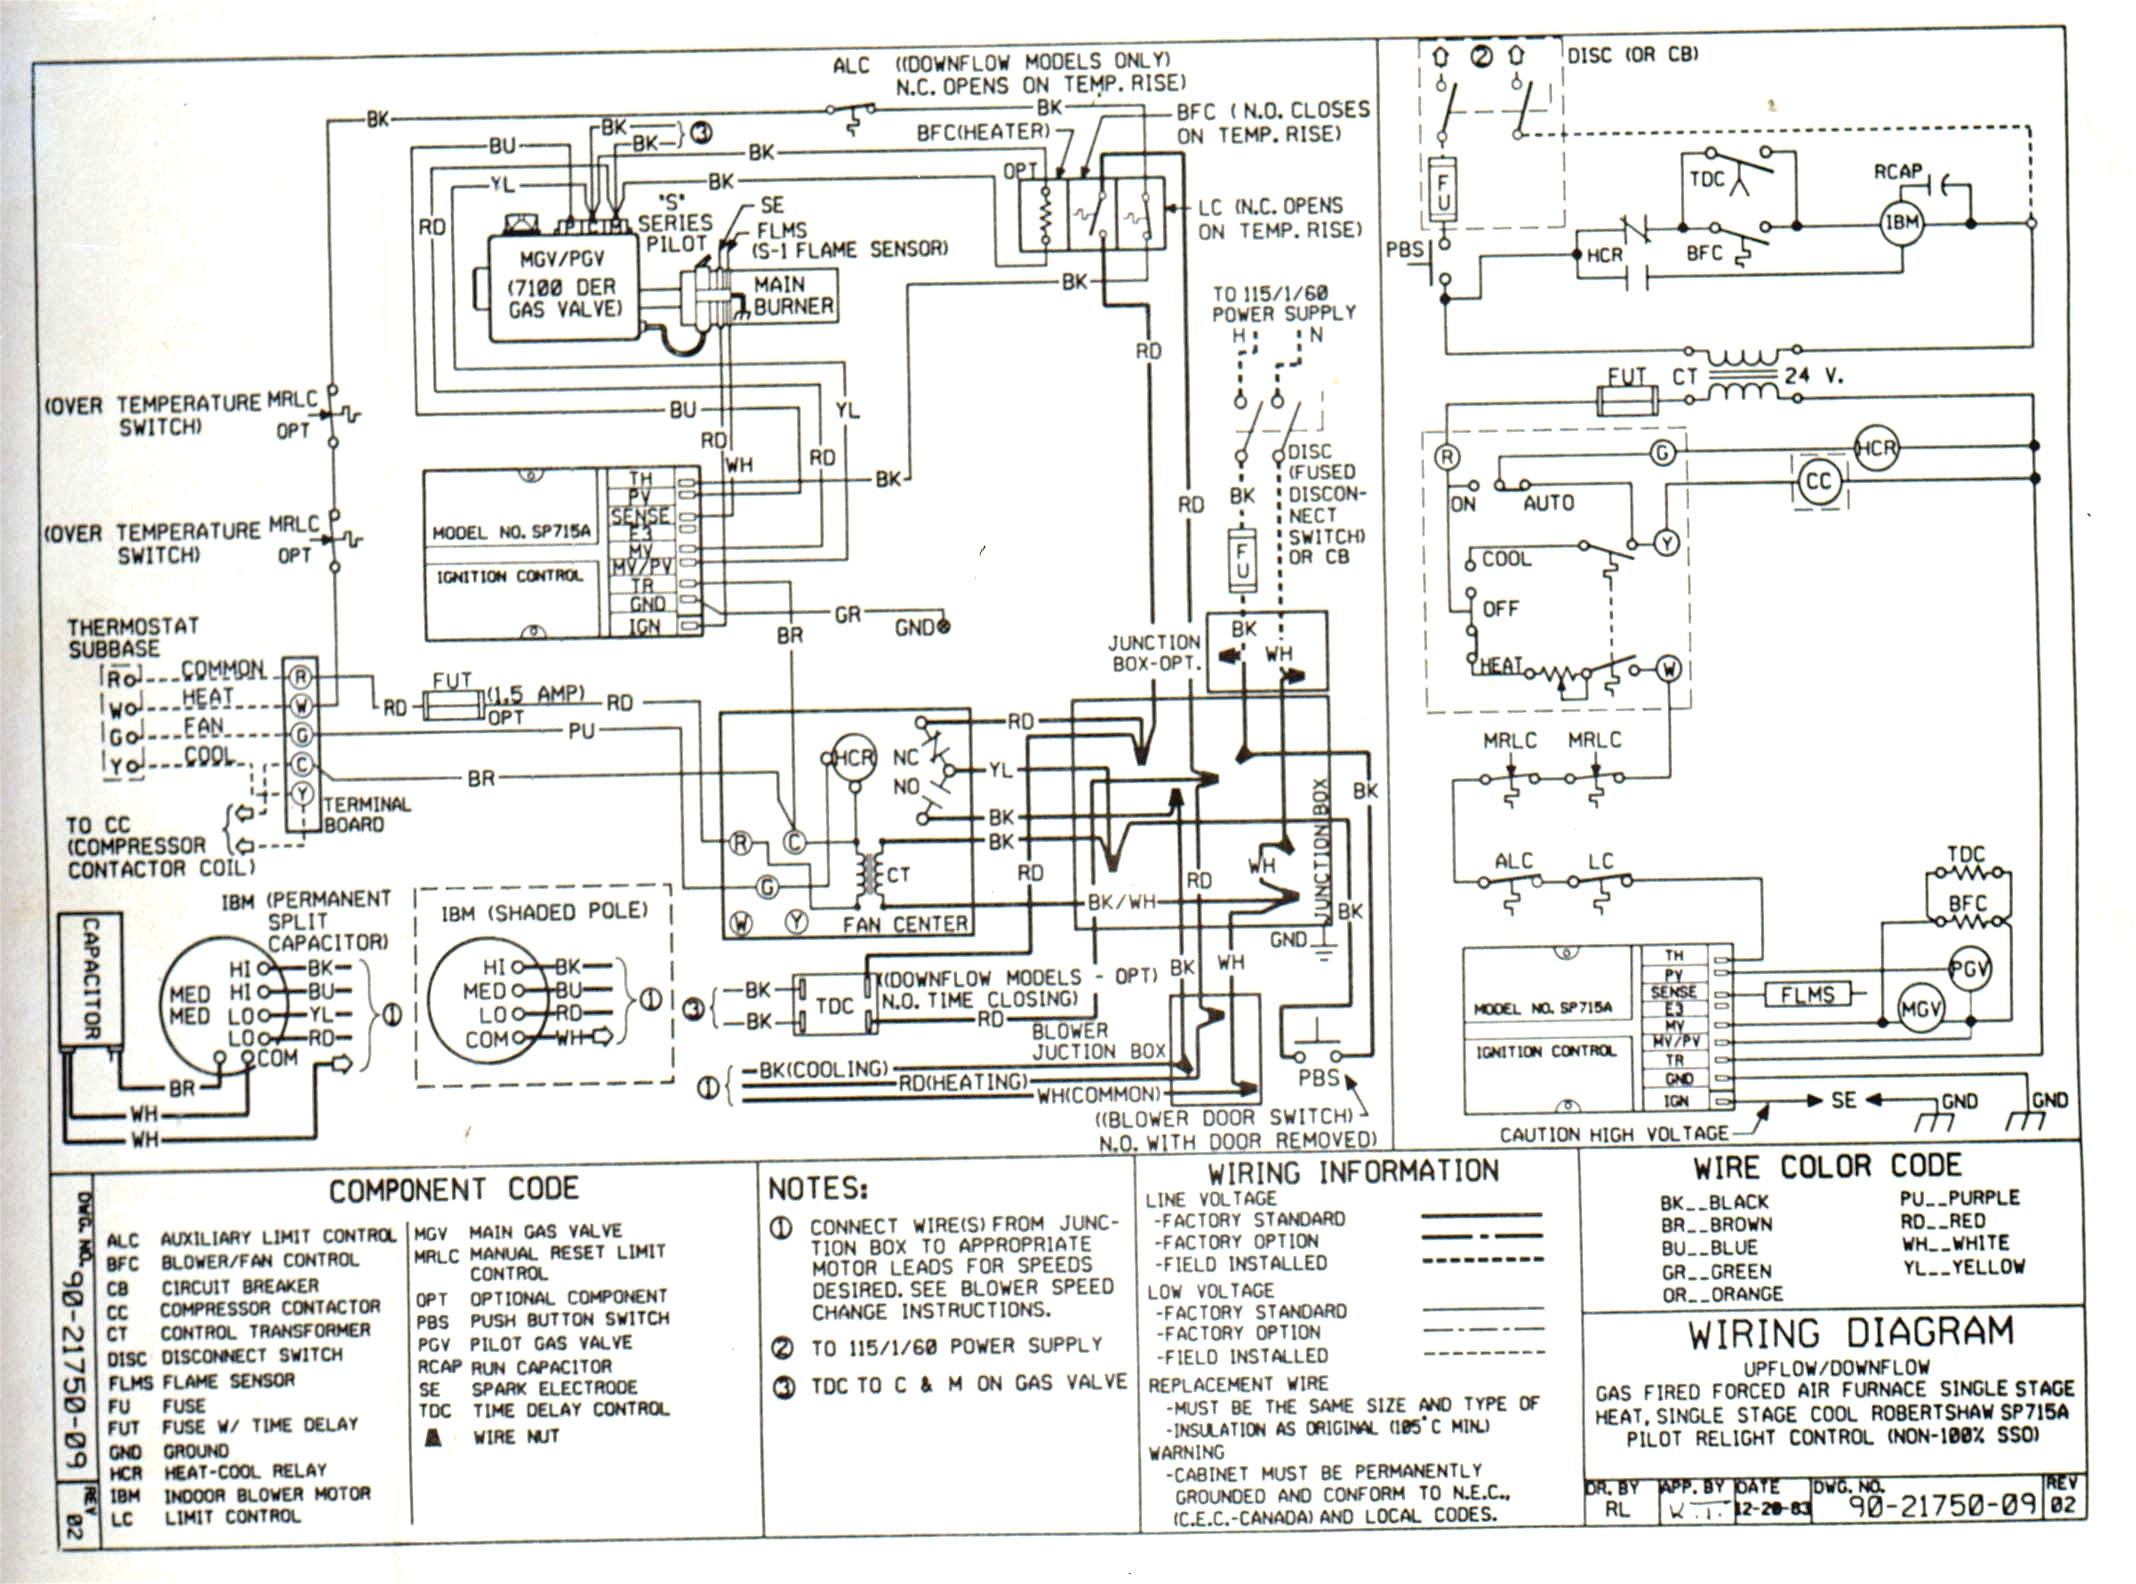 heat pump wiring diagram Download-Hid Wiring Diagram With Relay And Capacitor Best Inspiration York Heat Pump Wiring Diagram Irelandnews 15-b